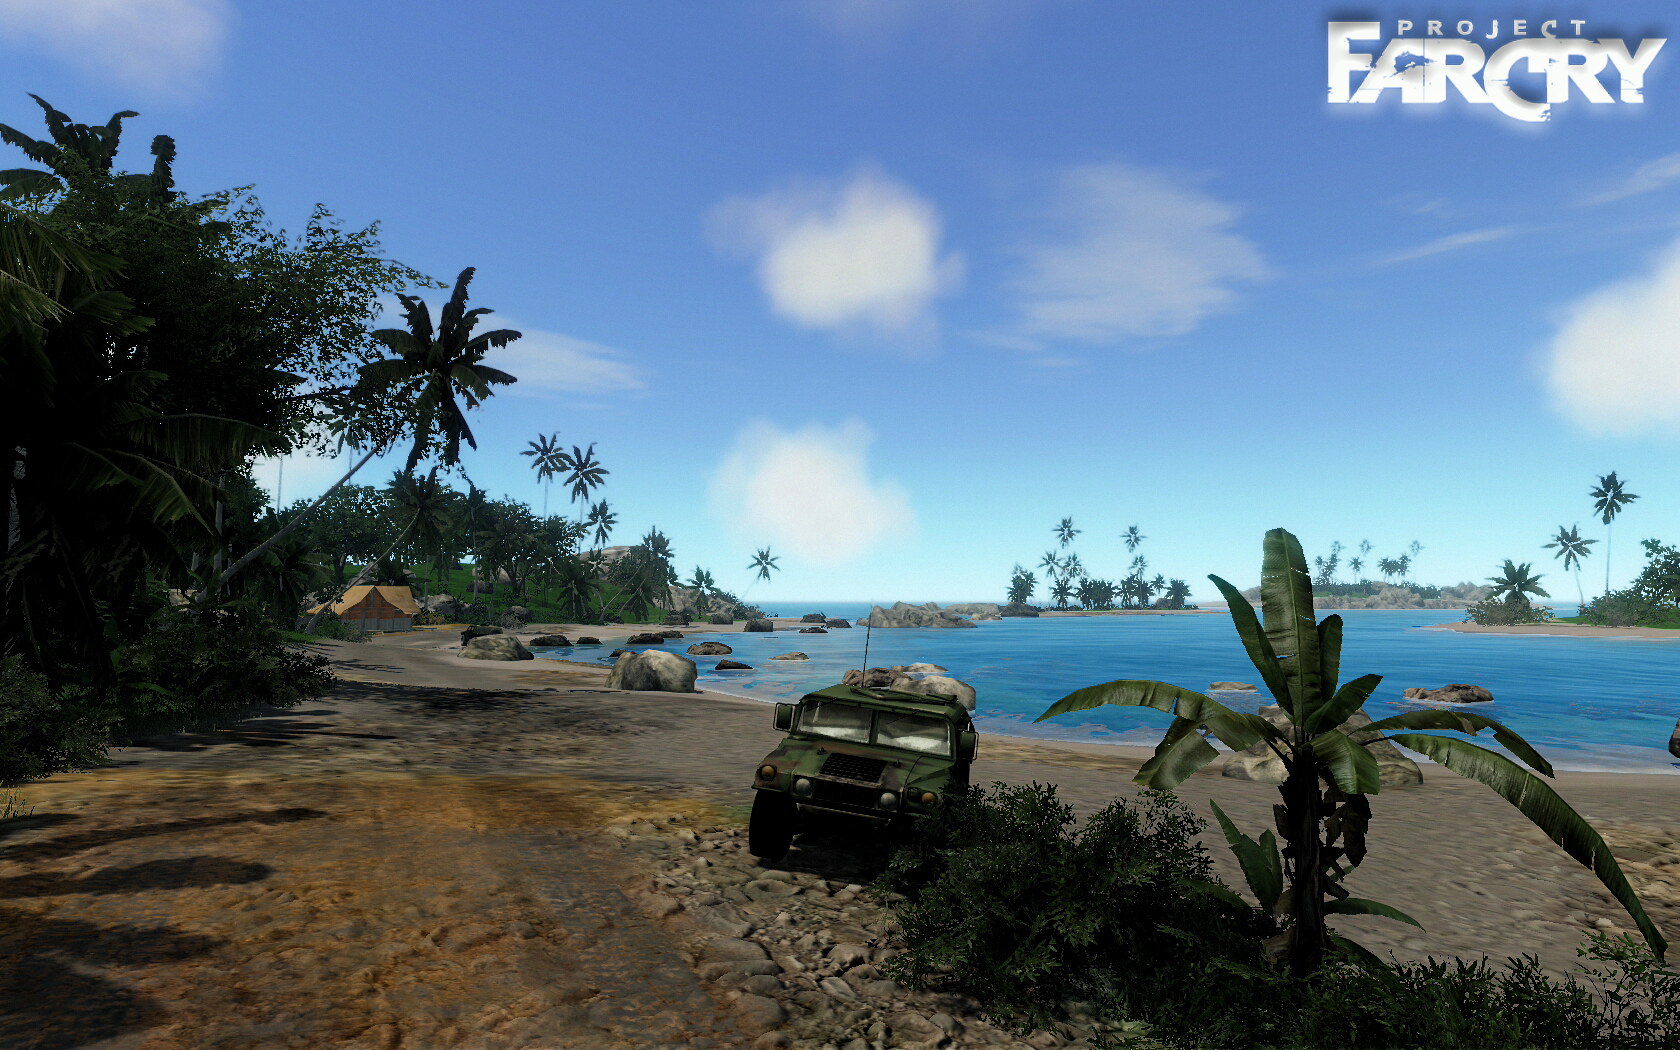 Wallpaper Image Project Far Cry Mod For Crysis Mod Db